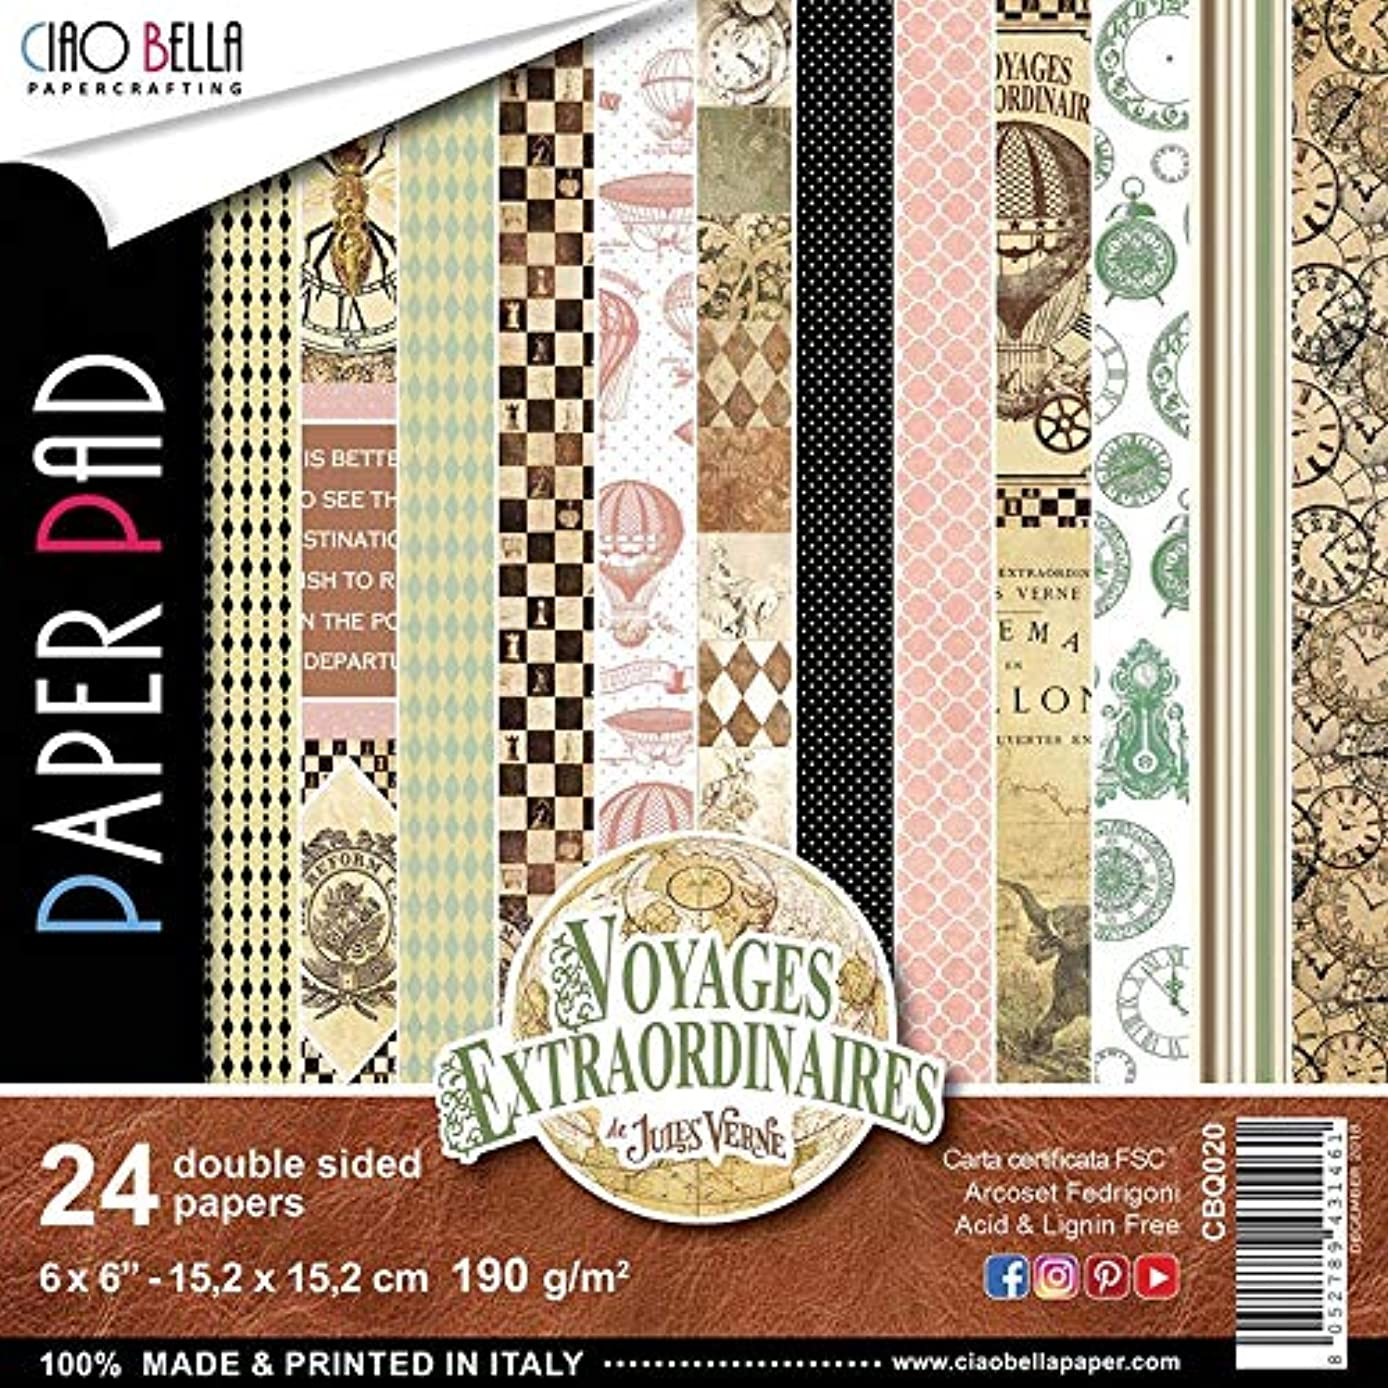 Ciao Bella CBQ020 Voyages Extraordinaires Dbl-Sided Paper 90lb 6